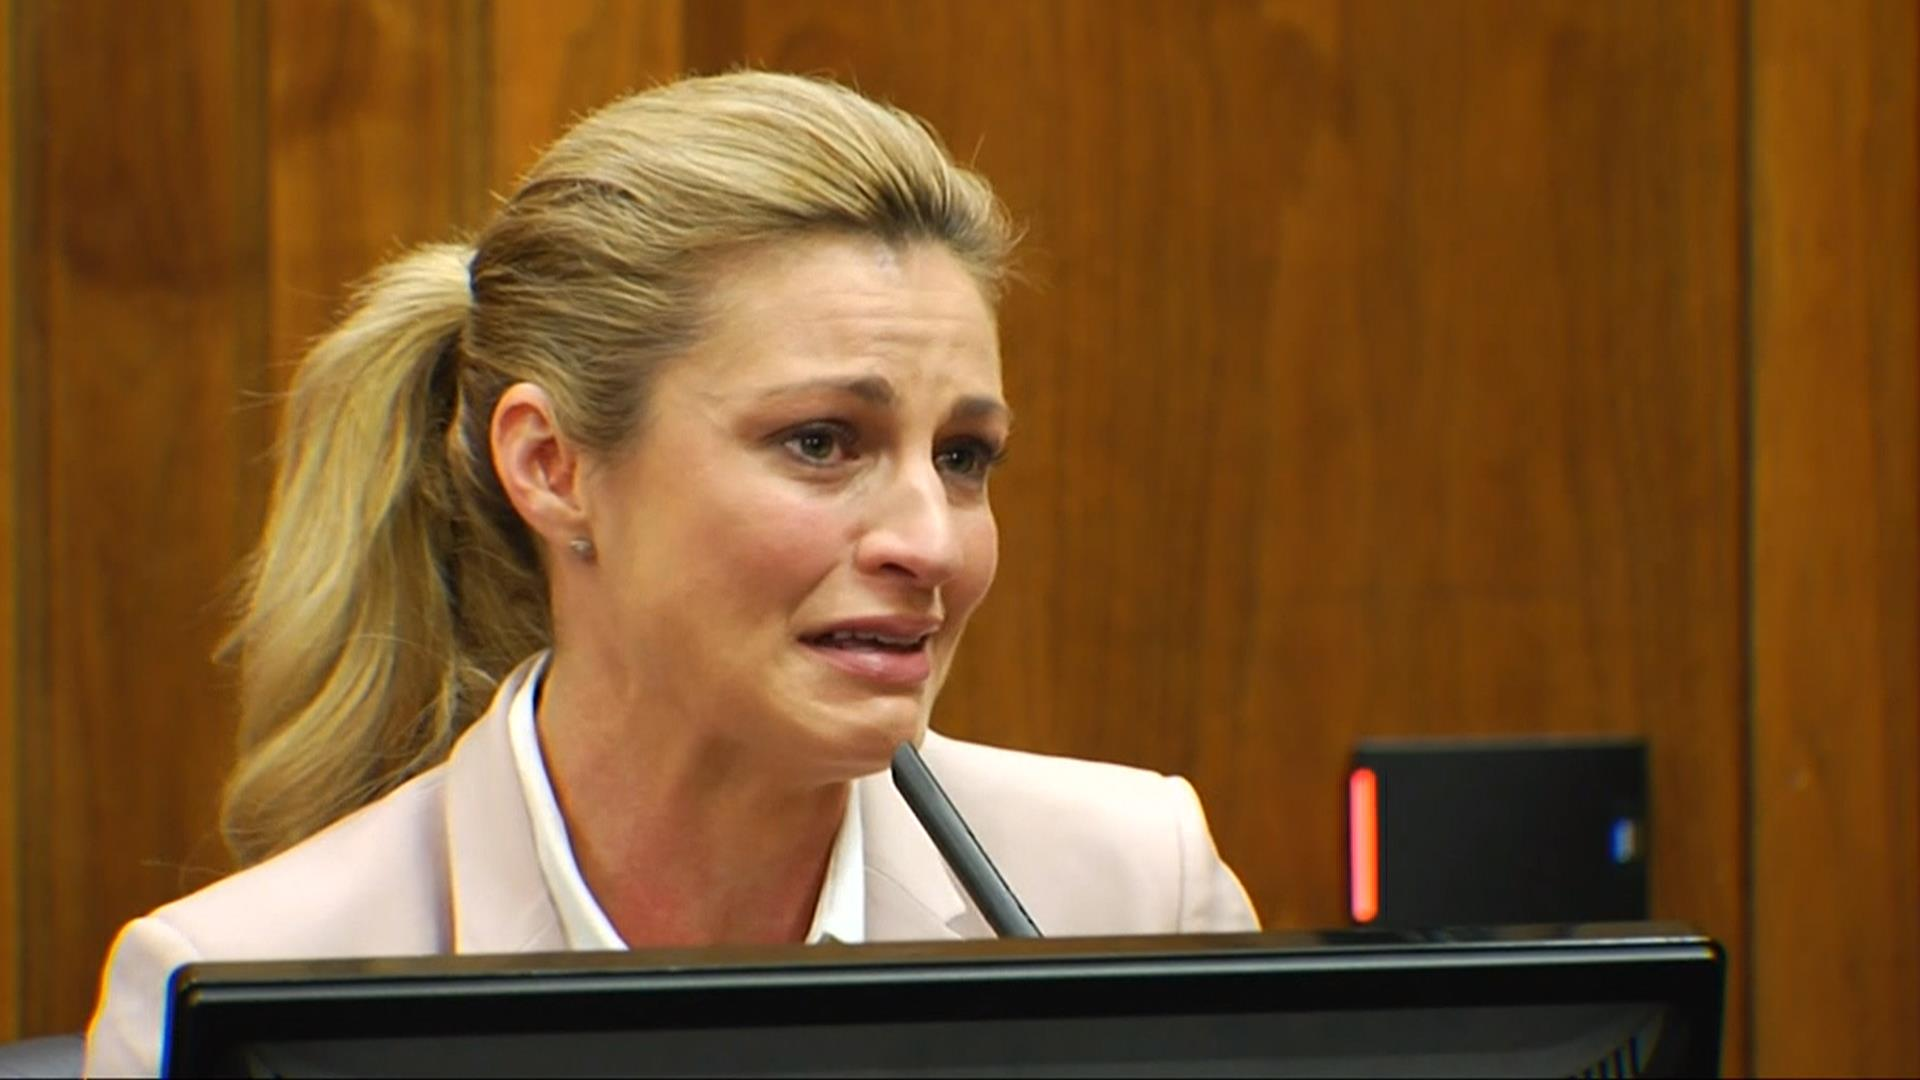 Erin Andrews Talks Relationships, Career During Second Day -8885